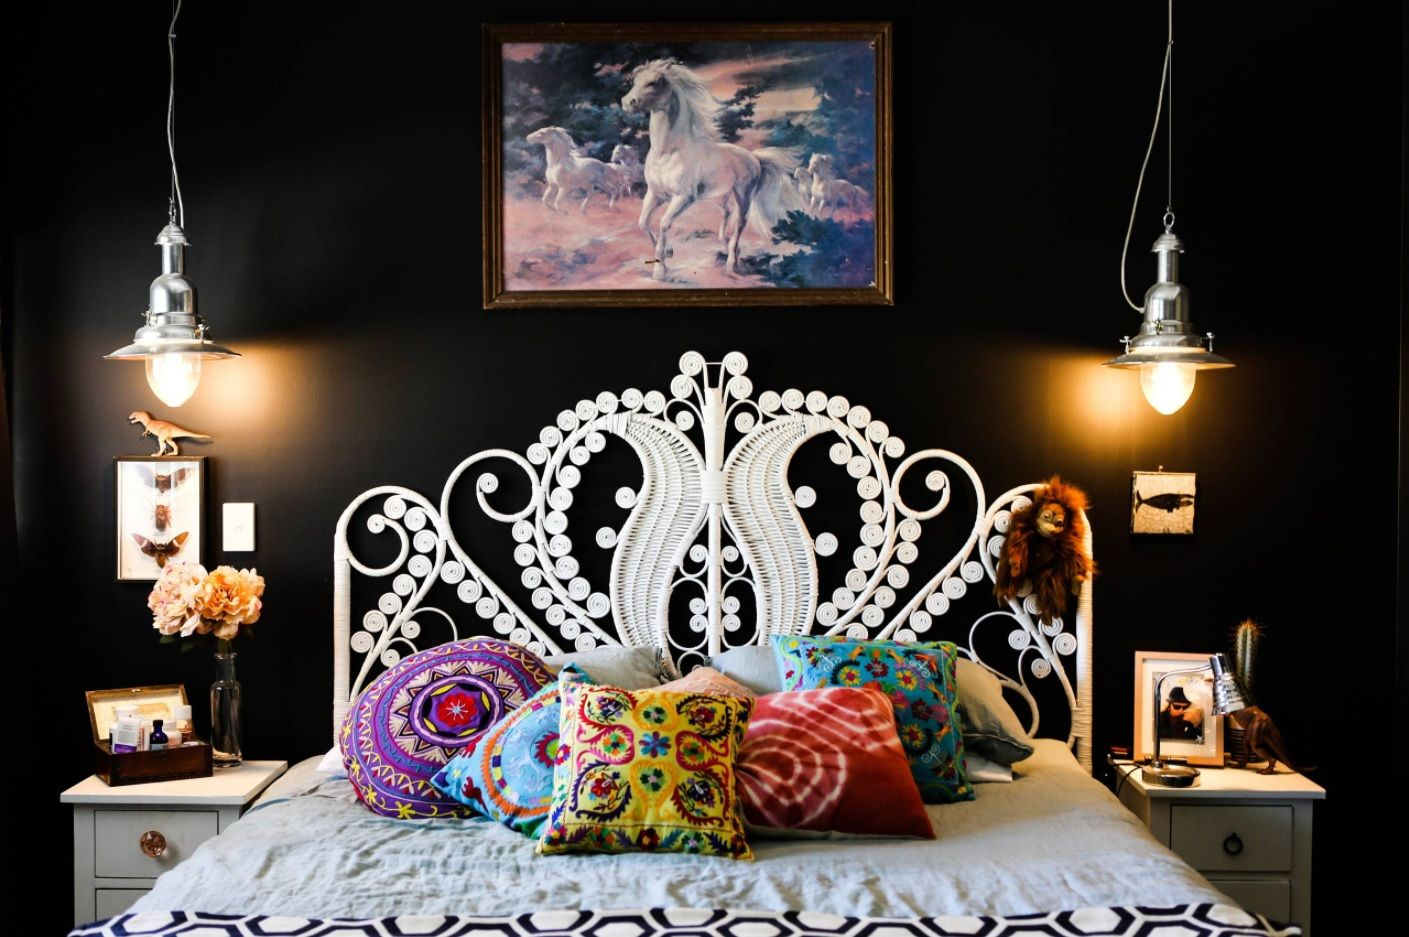 White Bedroom Furniture Set Ideas & Photos. Original, dare and even slightly garish art deco style